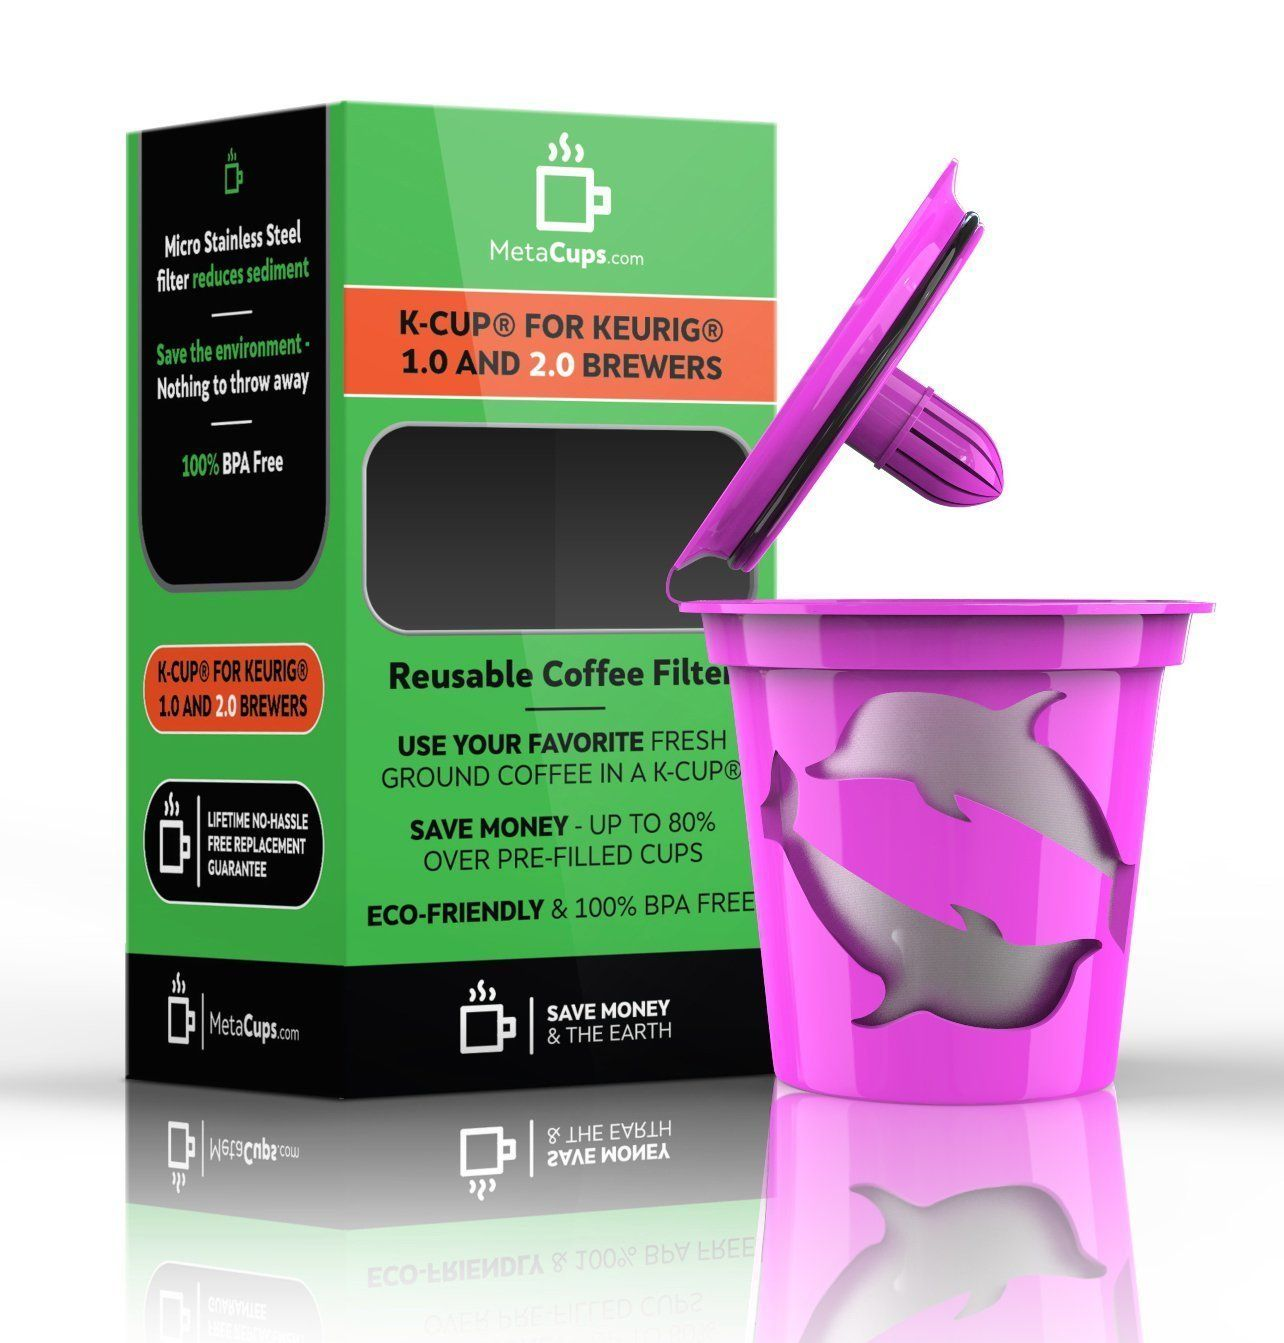 Reusable 2.0 Kcups Coffee Filter for 2.0 & 1